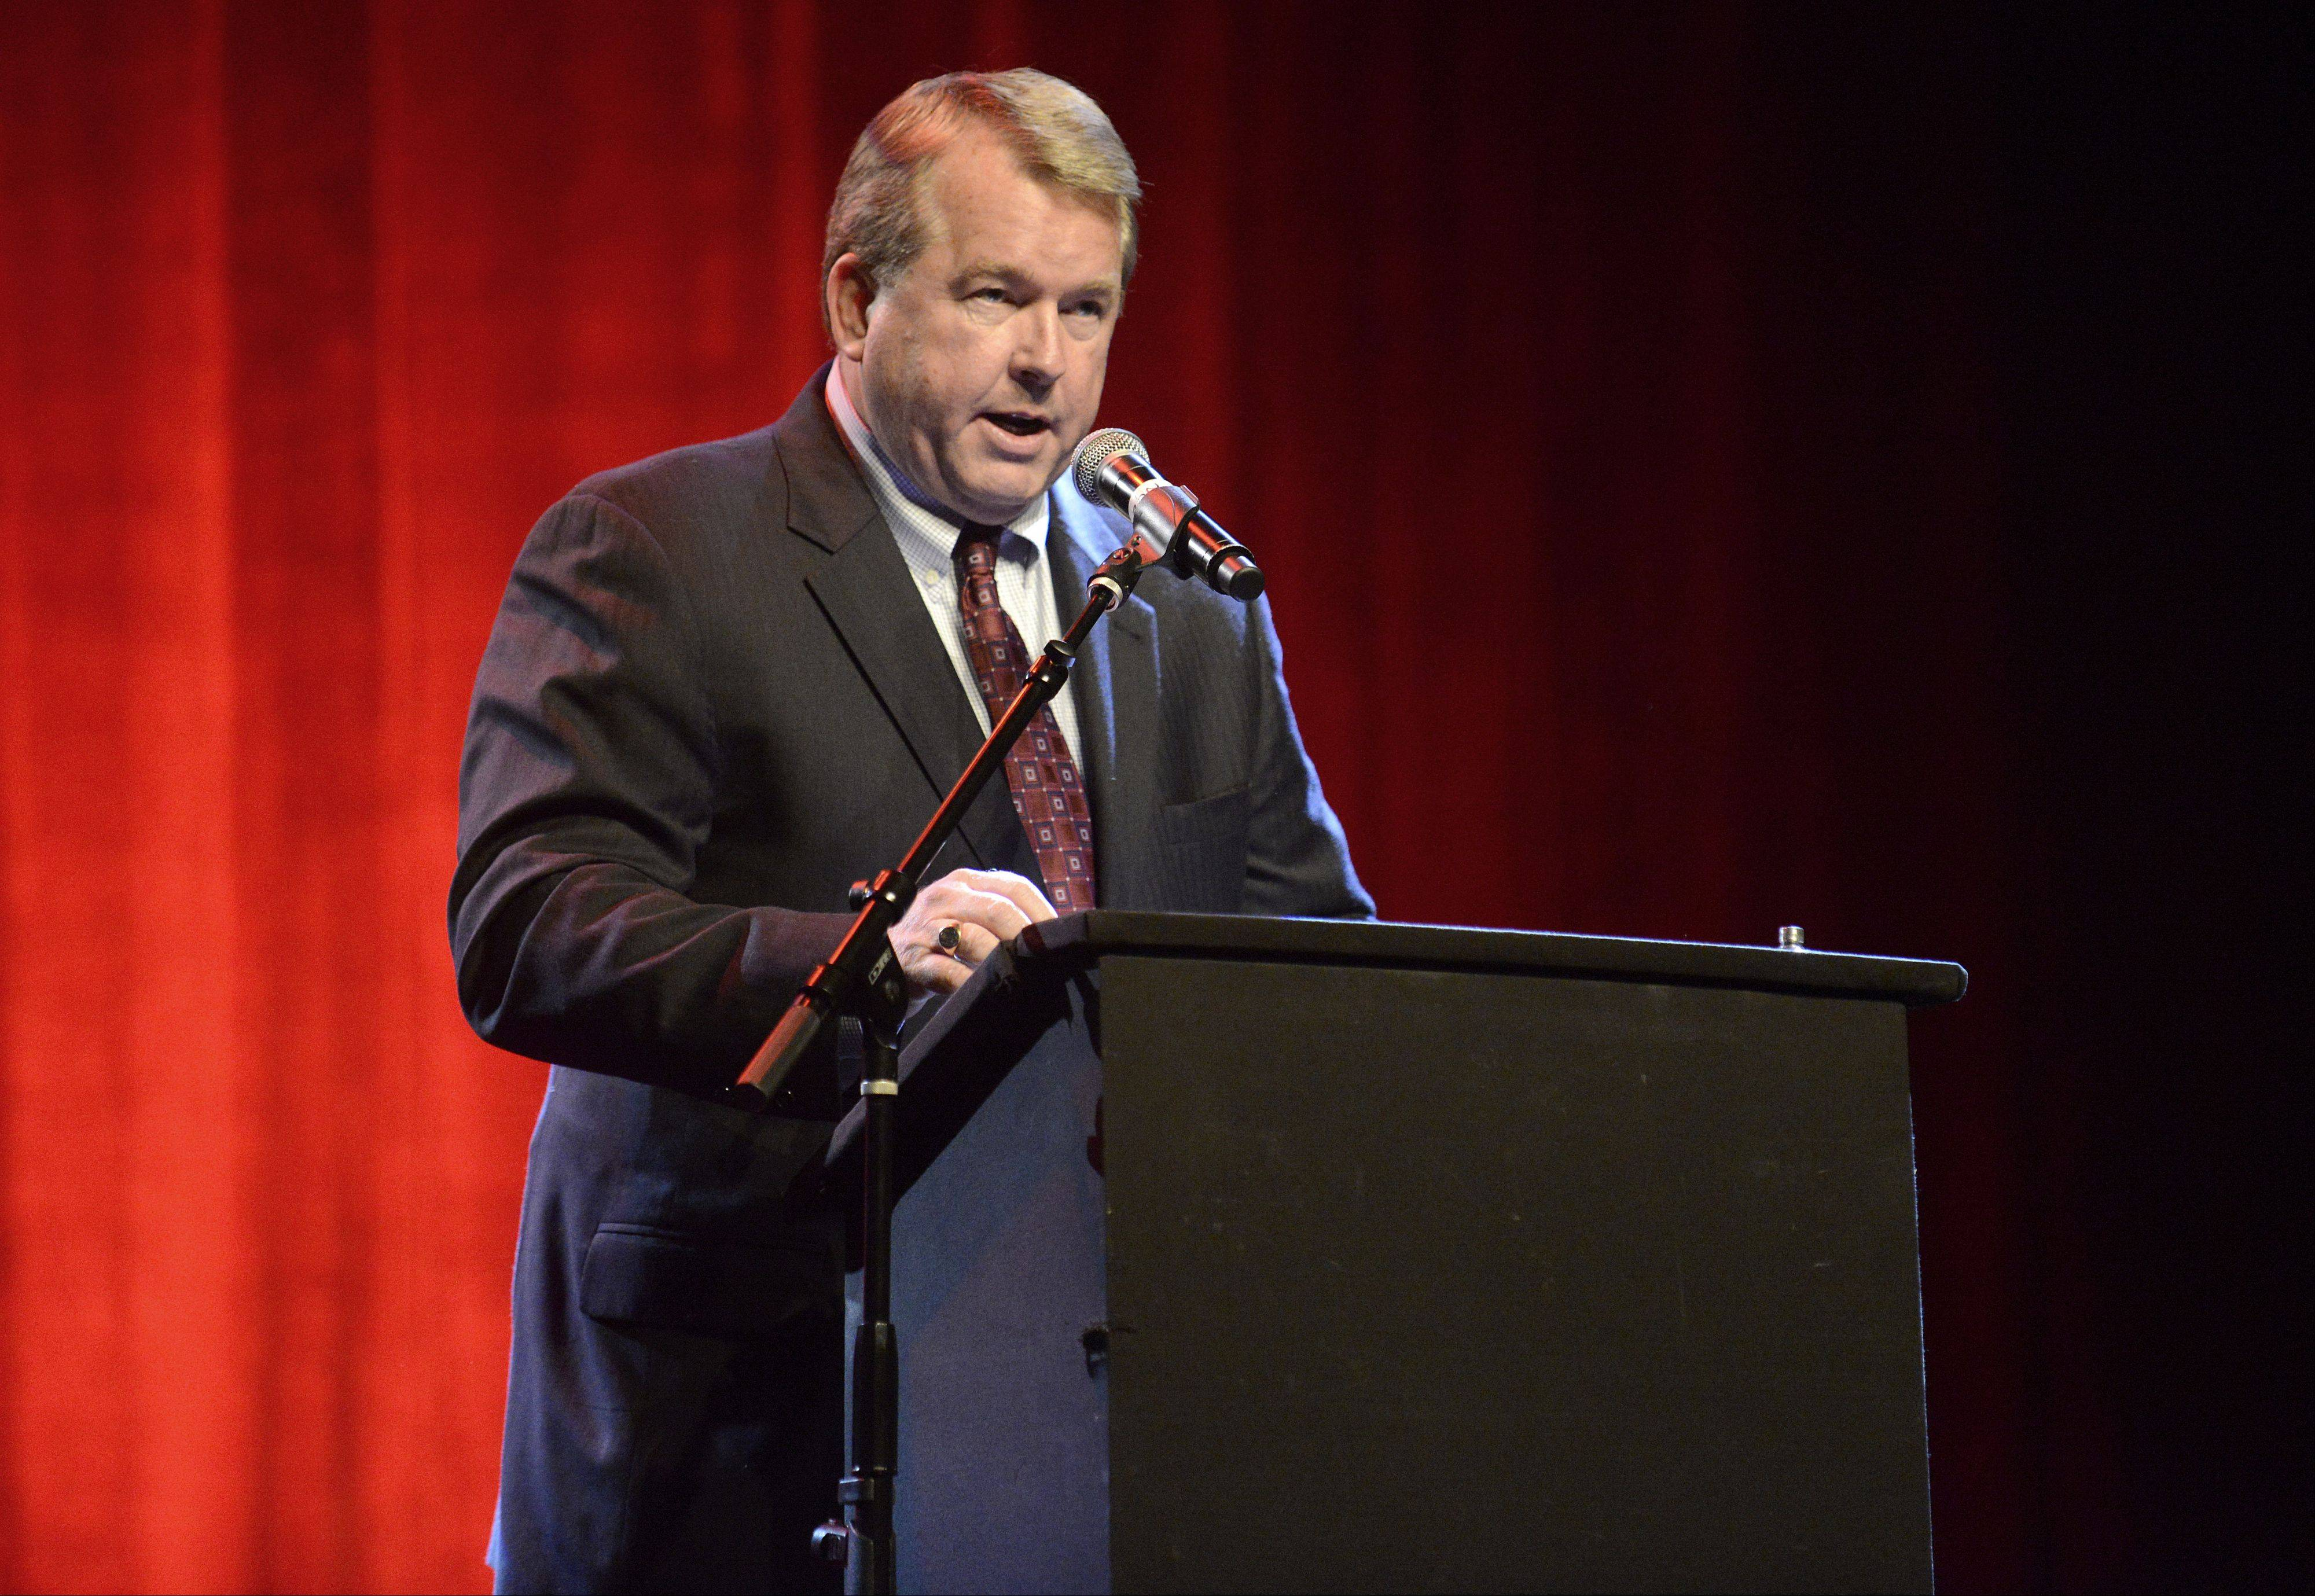 St. Charles Mayor Don DeWitte shares some closing remarks at his farewell party at the Arcada Theatre on Wednesday.